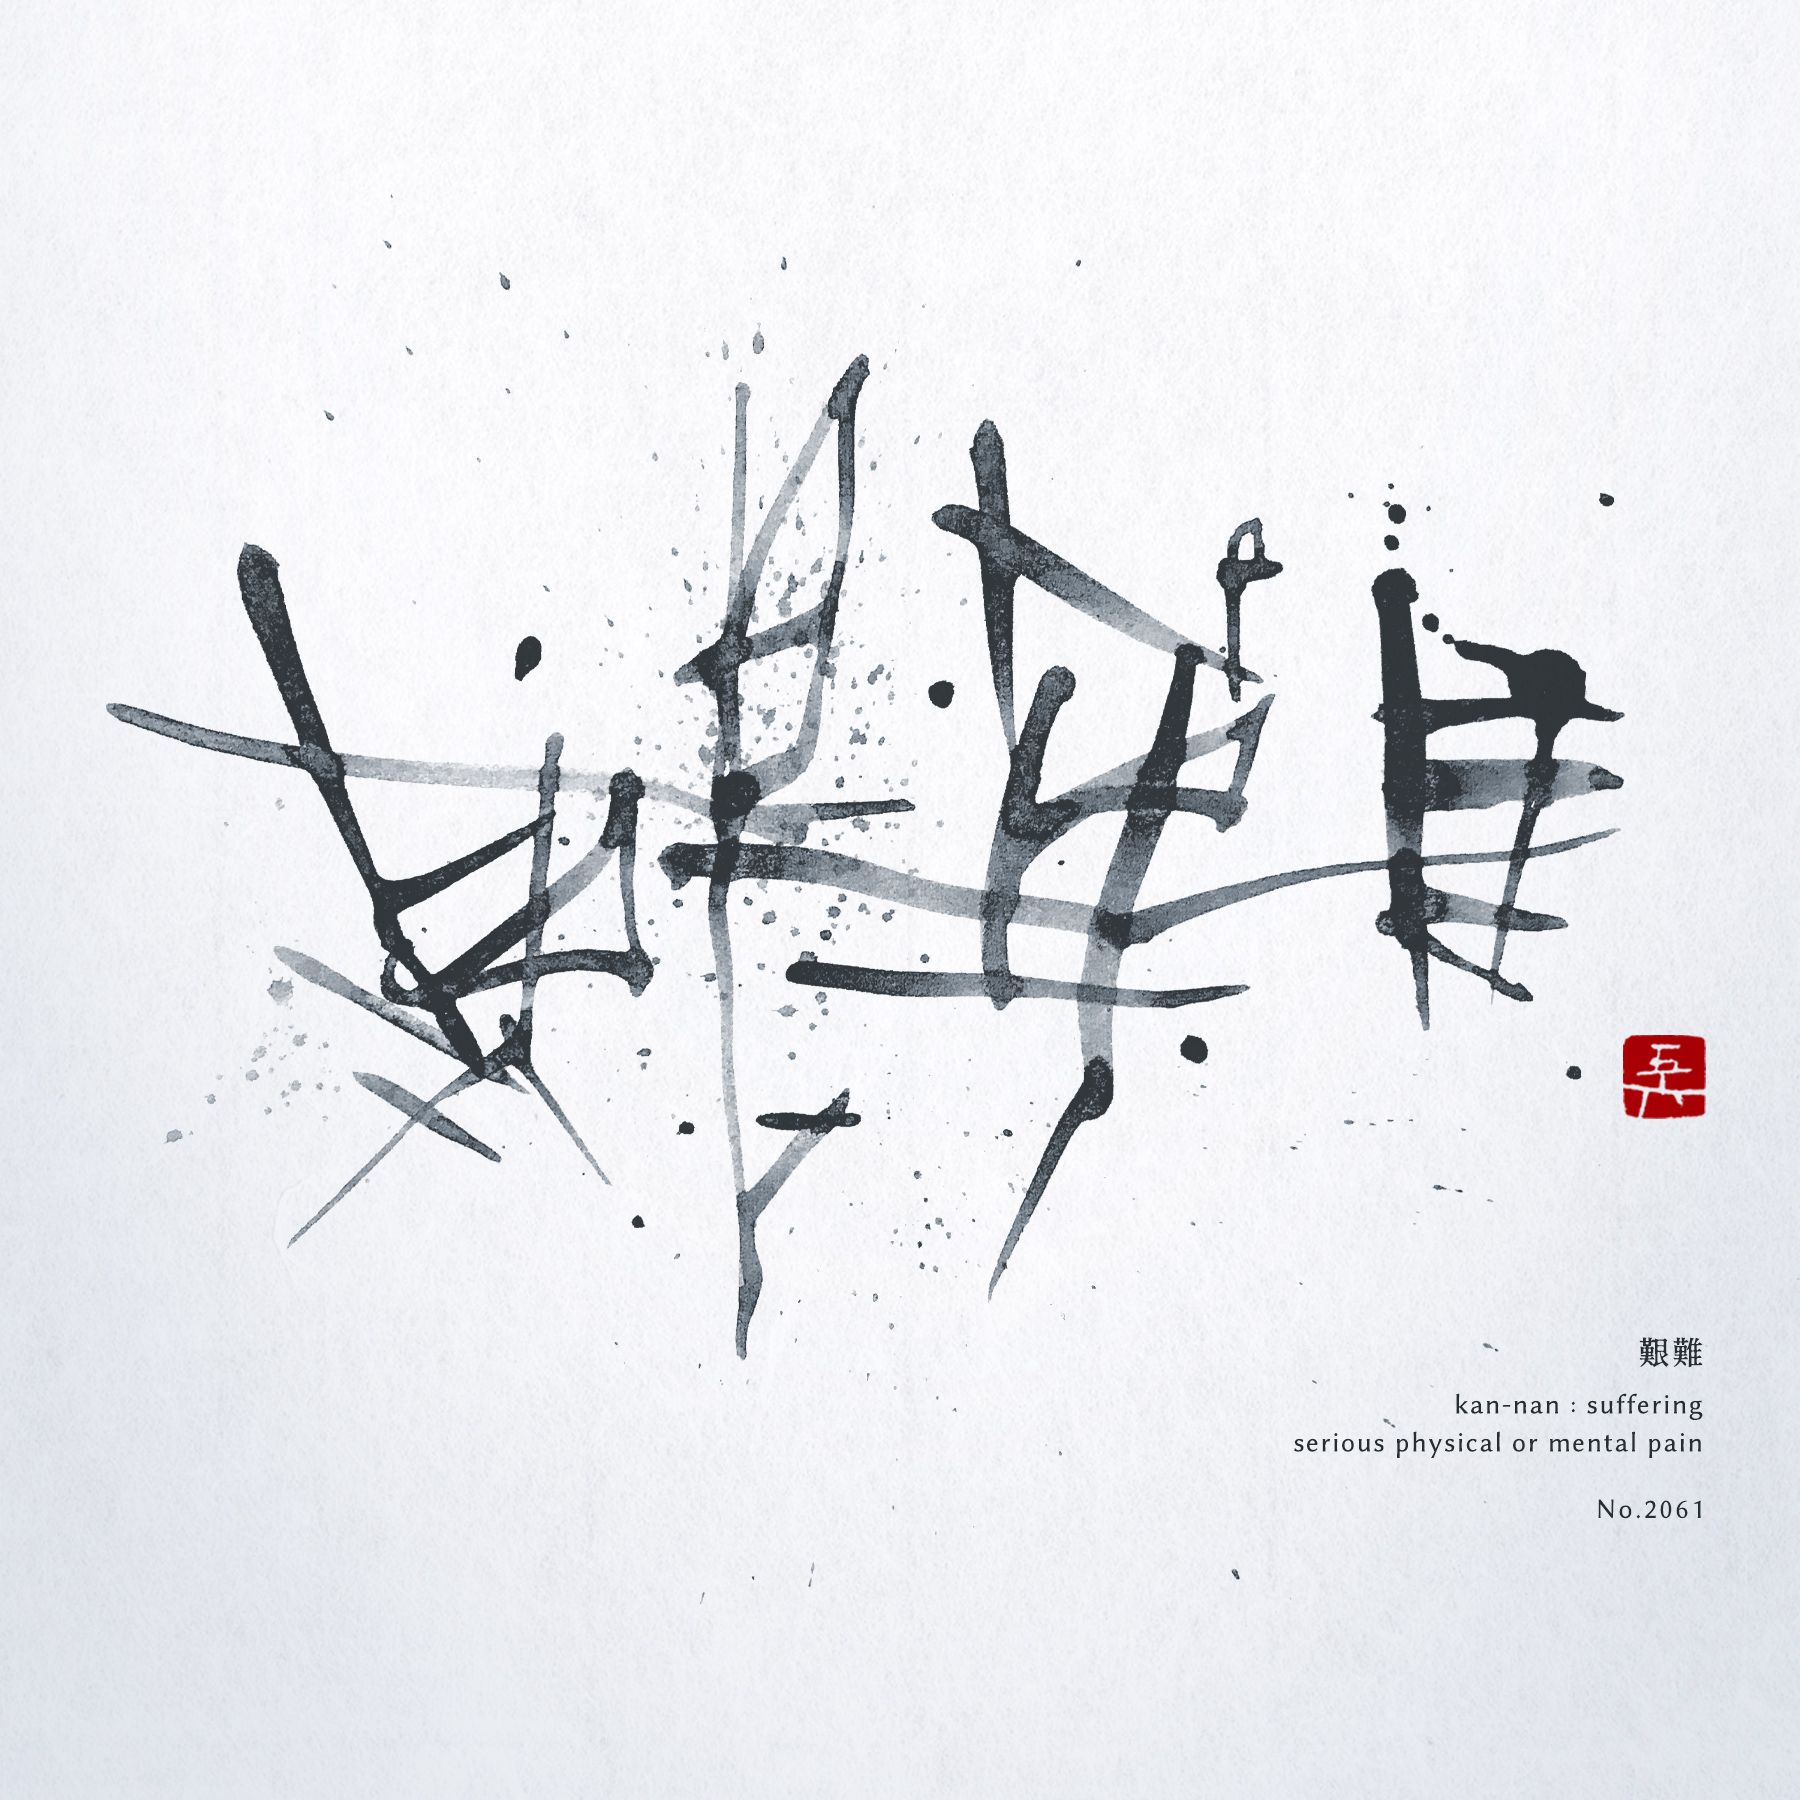 艱難 | suffering 書道作品 japaneseart japanese calligraphy 書家 田川悟郎 Goroh Tagawa